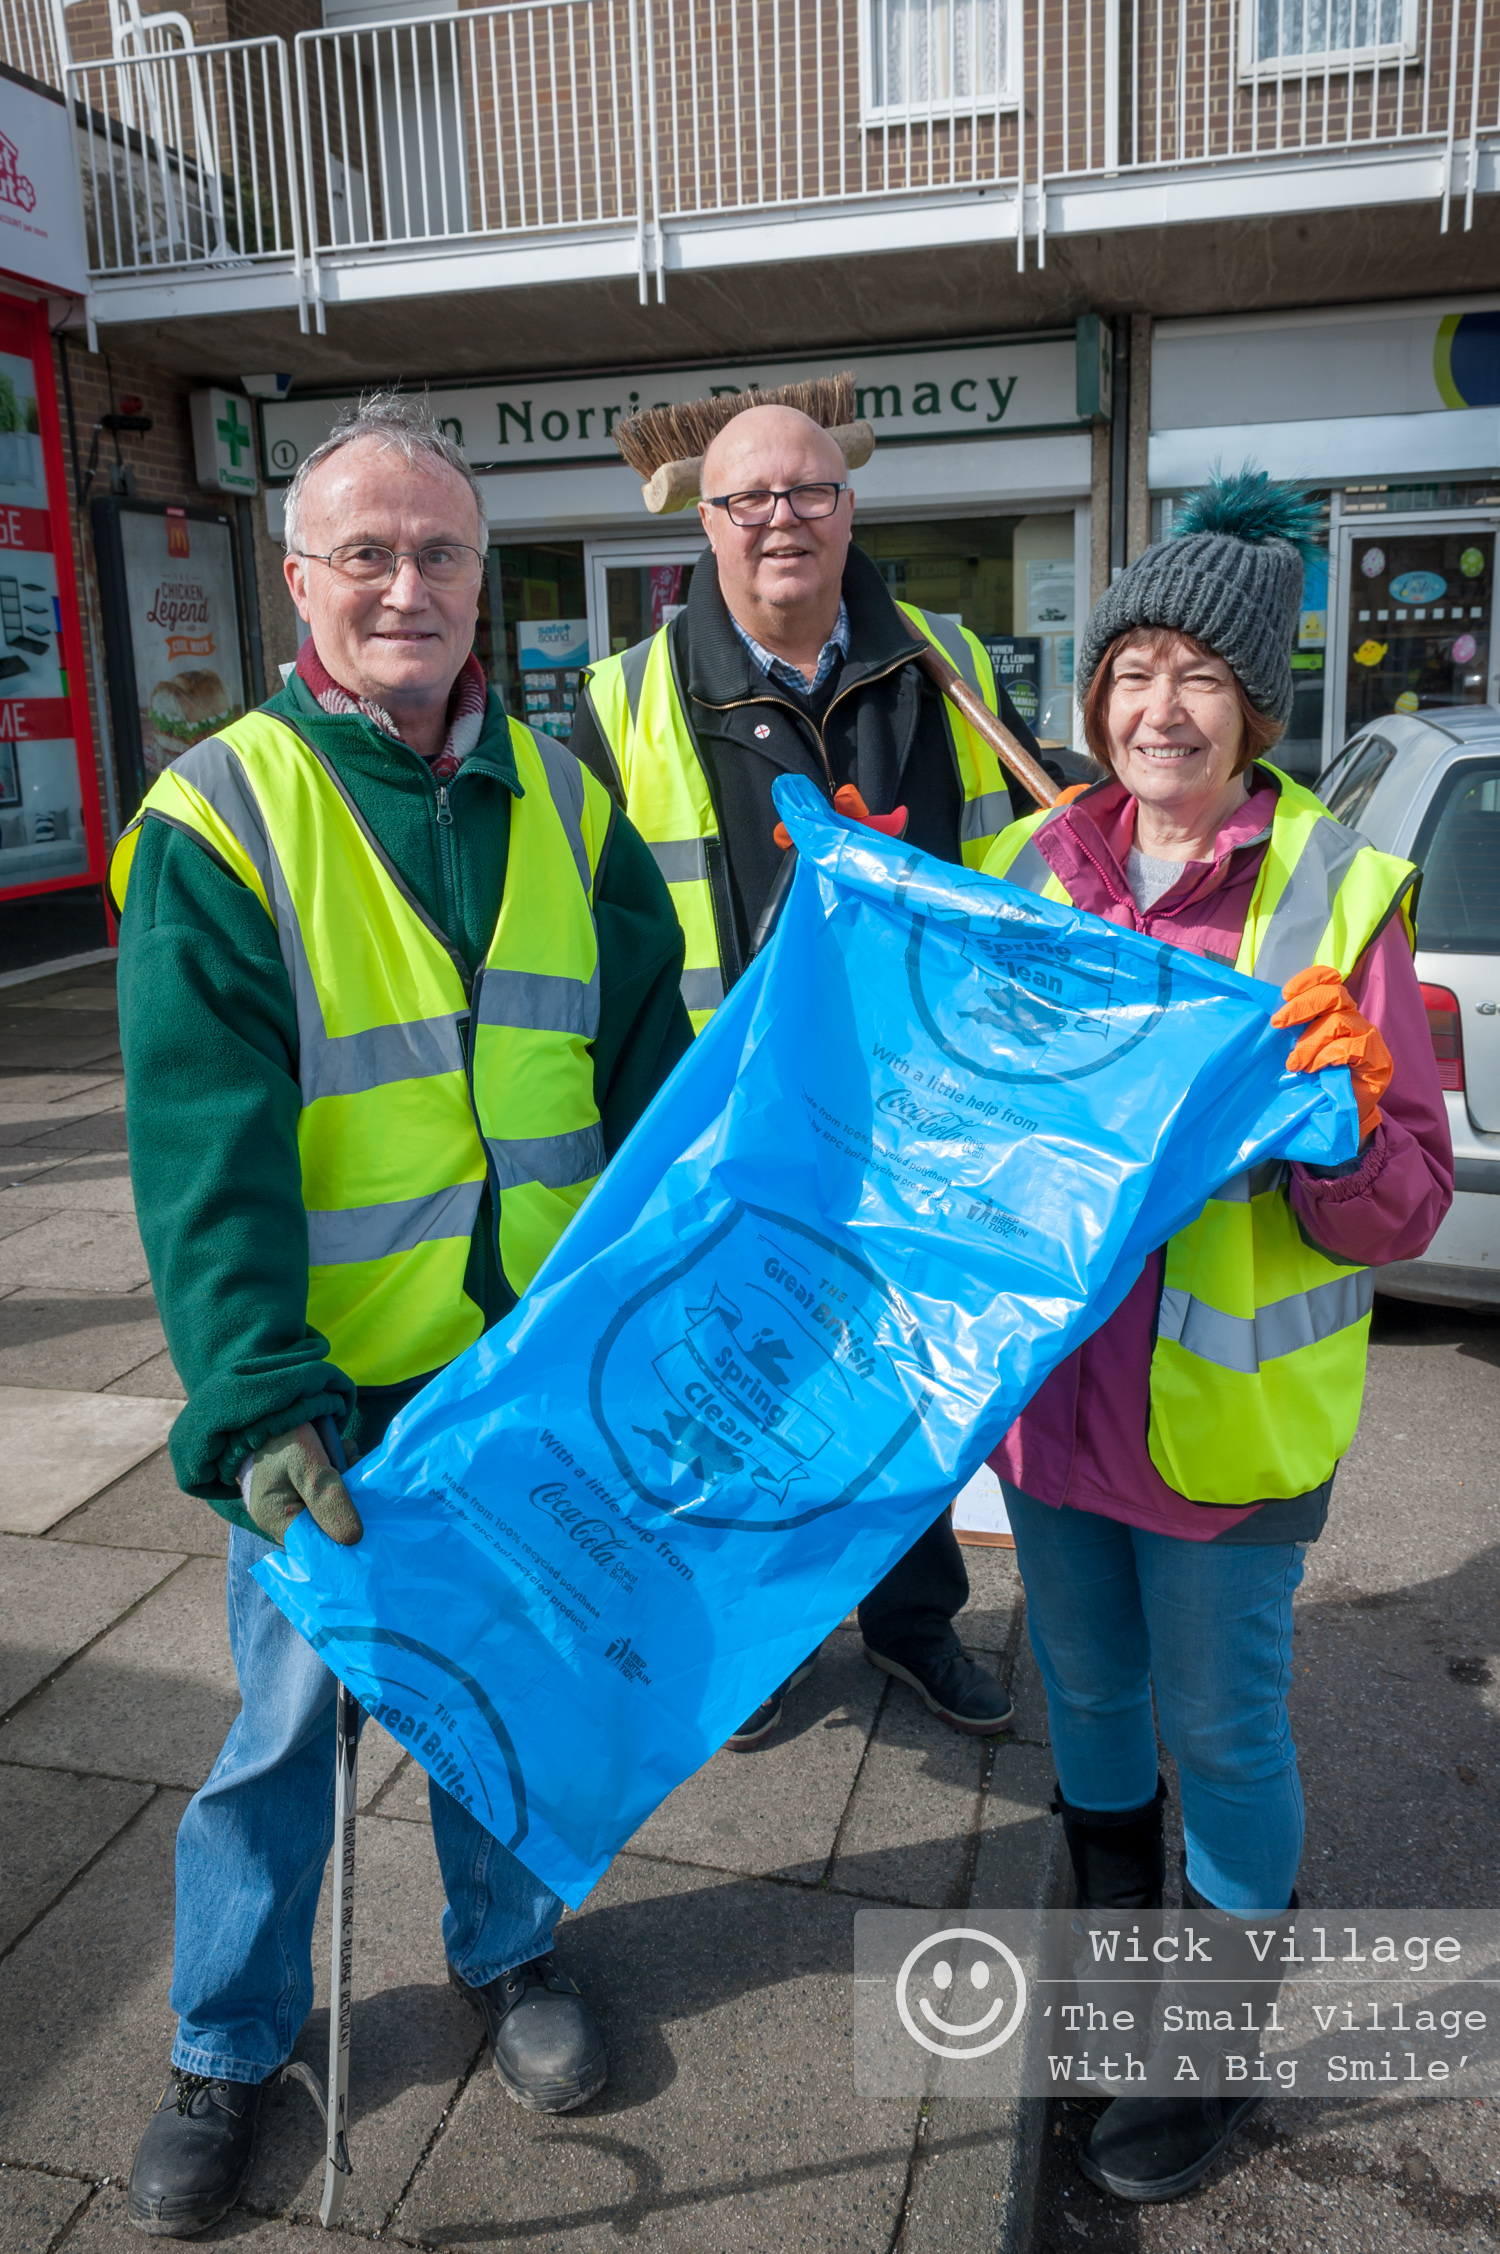 The Great British Spring Clean Of Wick Village